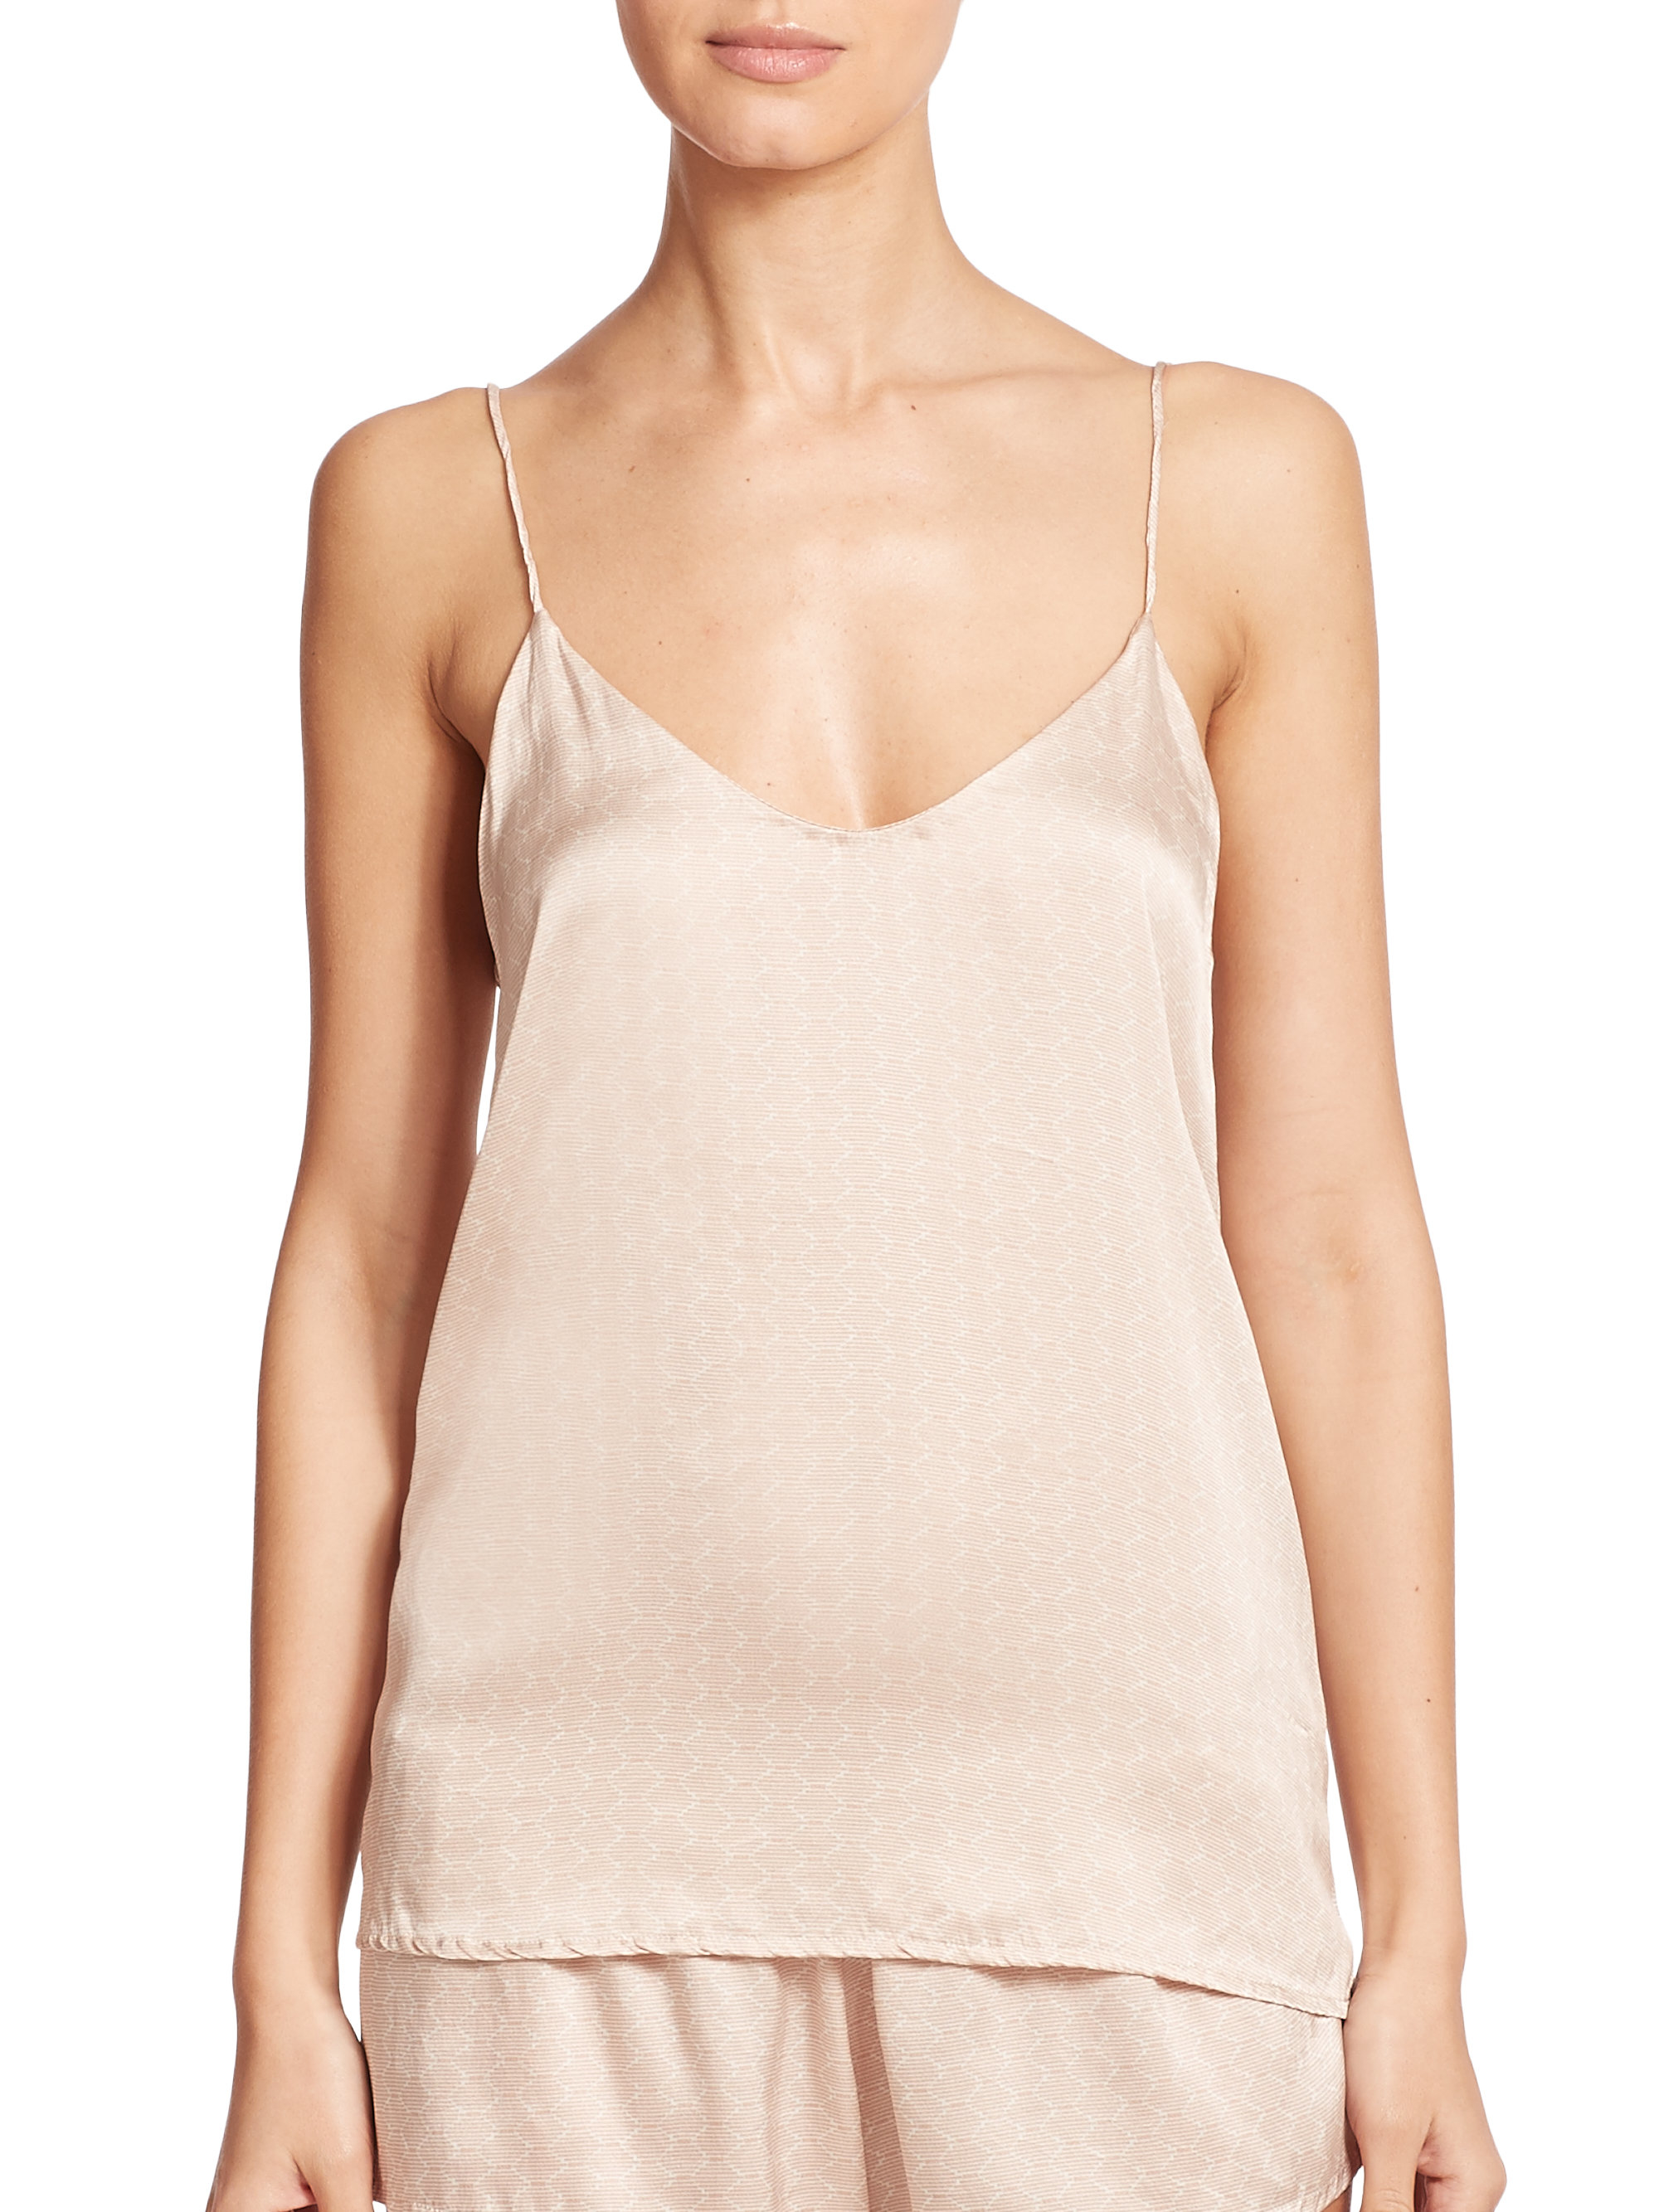 Lyst - Beautiful Bottoms Simple Silk Camisole In Natural-3541